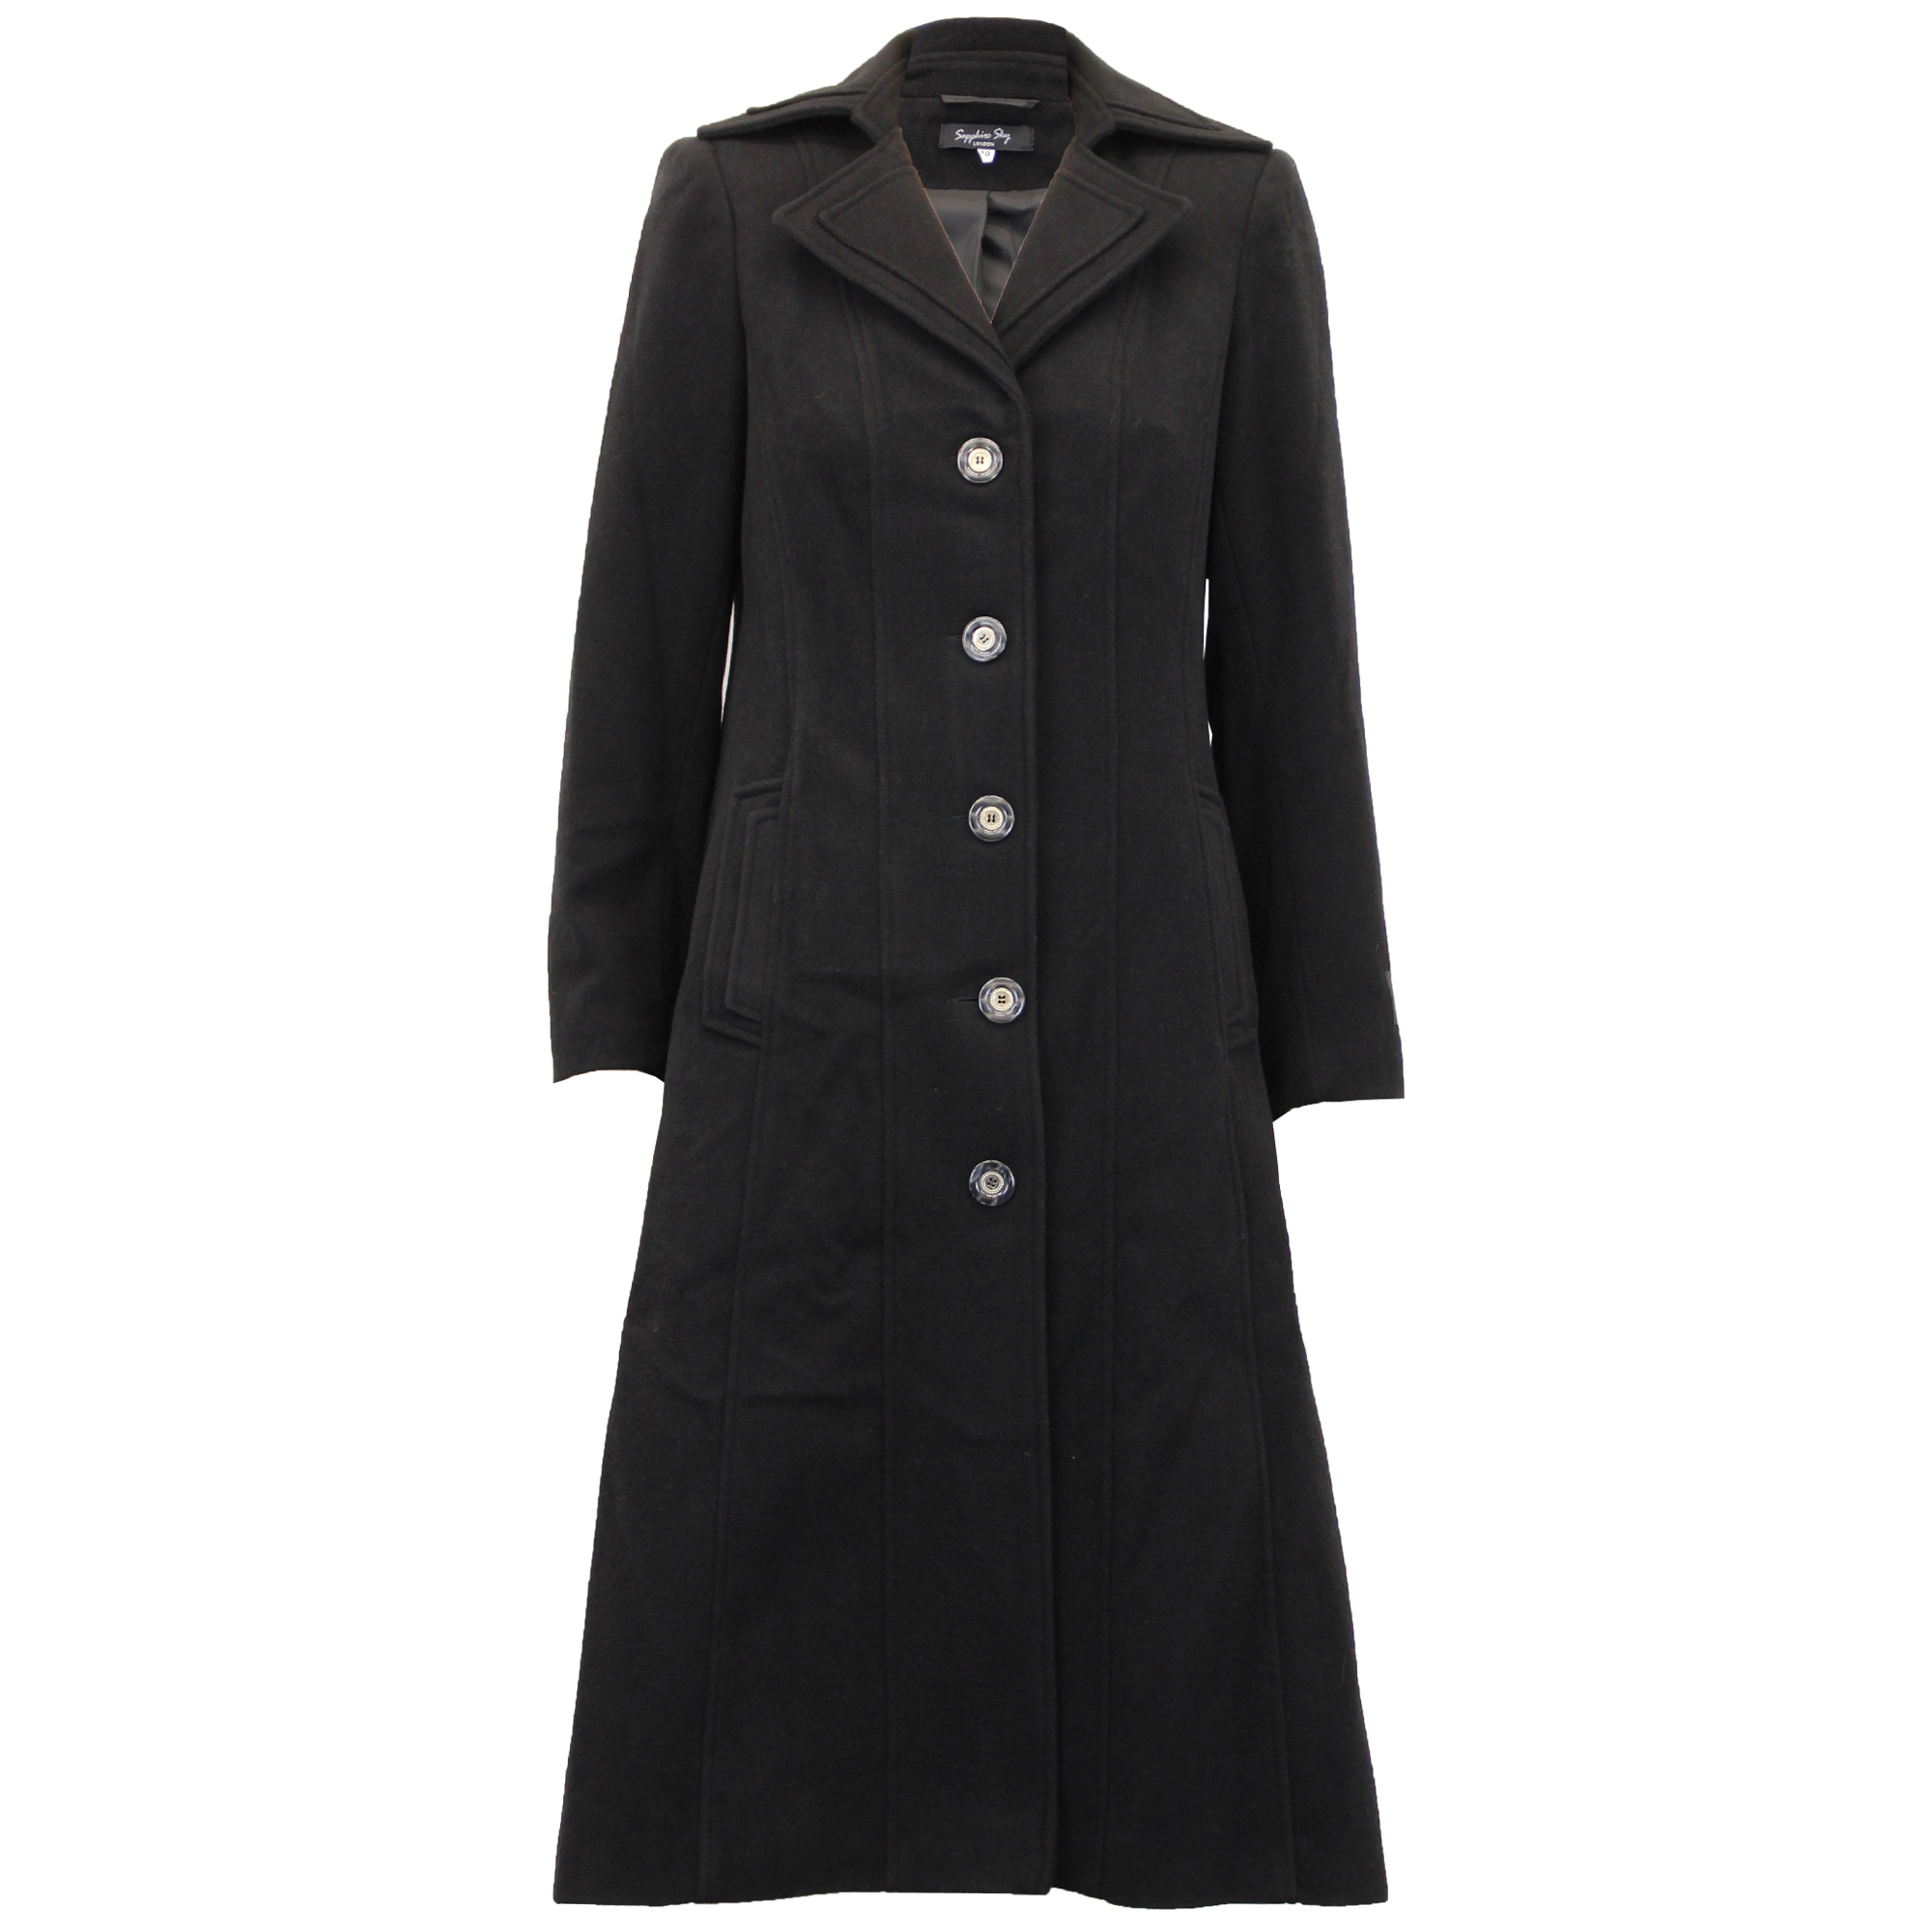 Overcoat For Womens 5 Reviews. Here makeshop-mdrcky9h.ga shows customers a fashion collection of current overcoat for makeshop-mdrcky9h.ga can find many great items. They all .